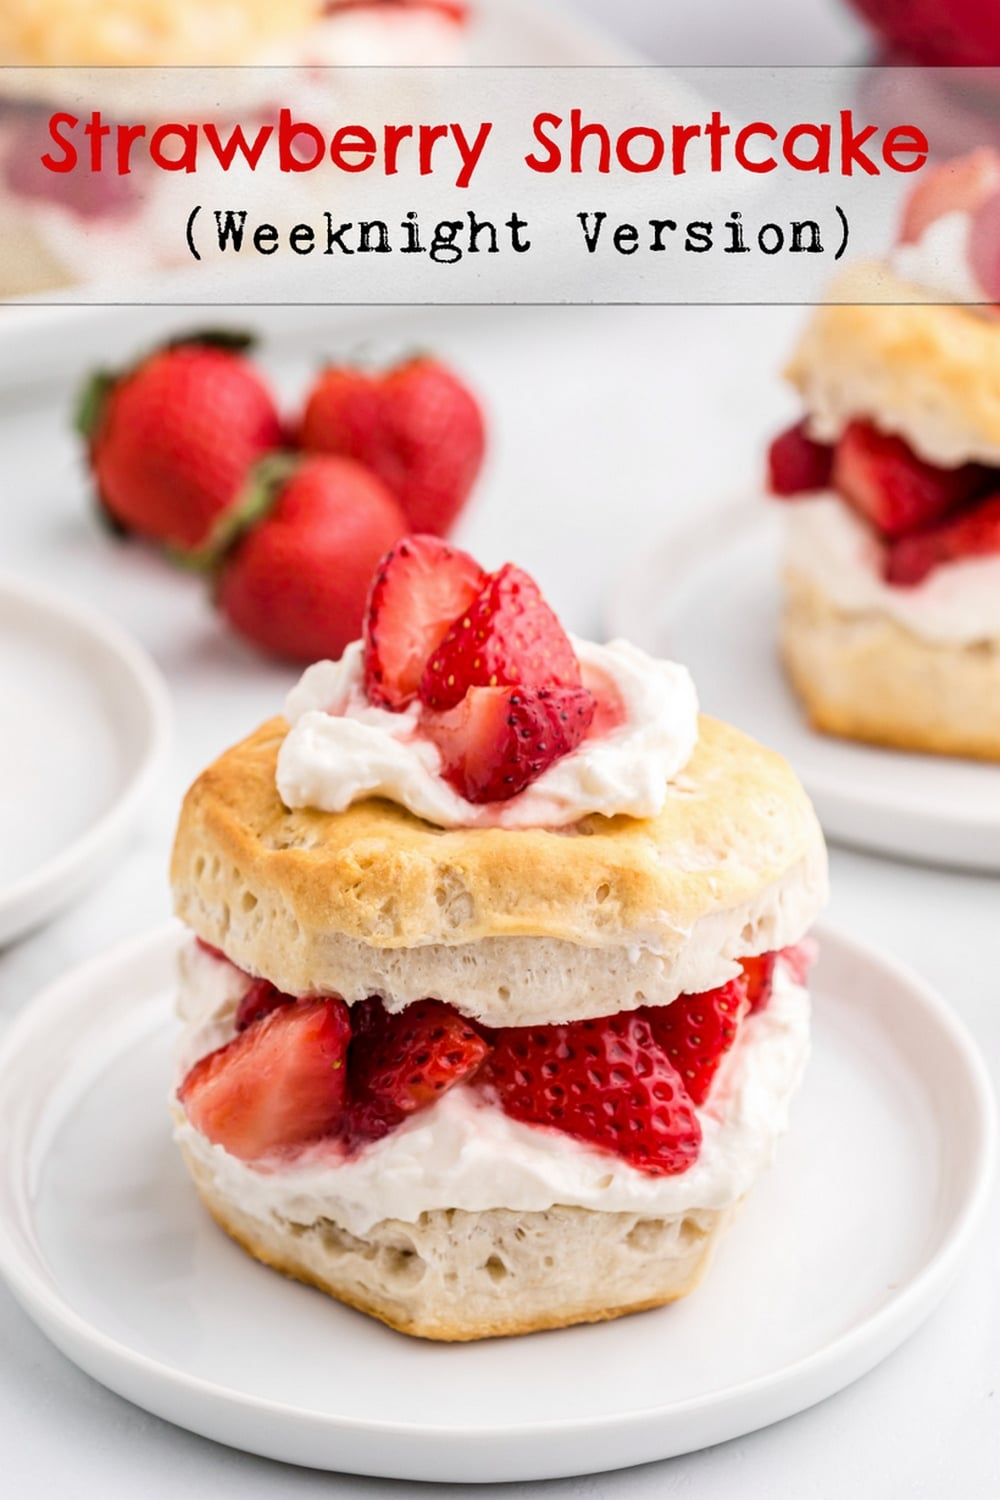 When you're short on time, but still want dessert, this weeknight version of Strawberry Shortcake hits the sweet spot and couldn't be easier to make. via @cmpollak1